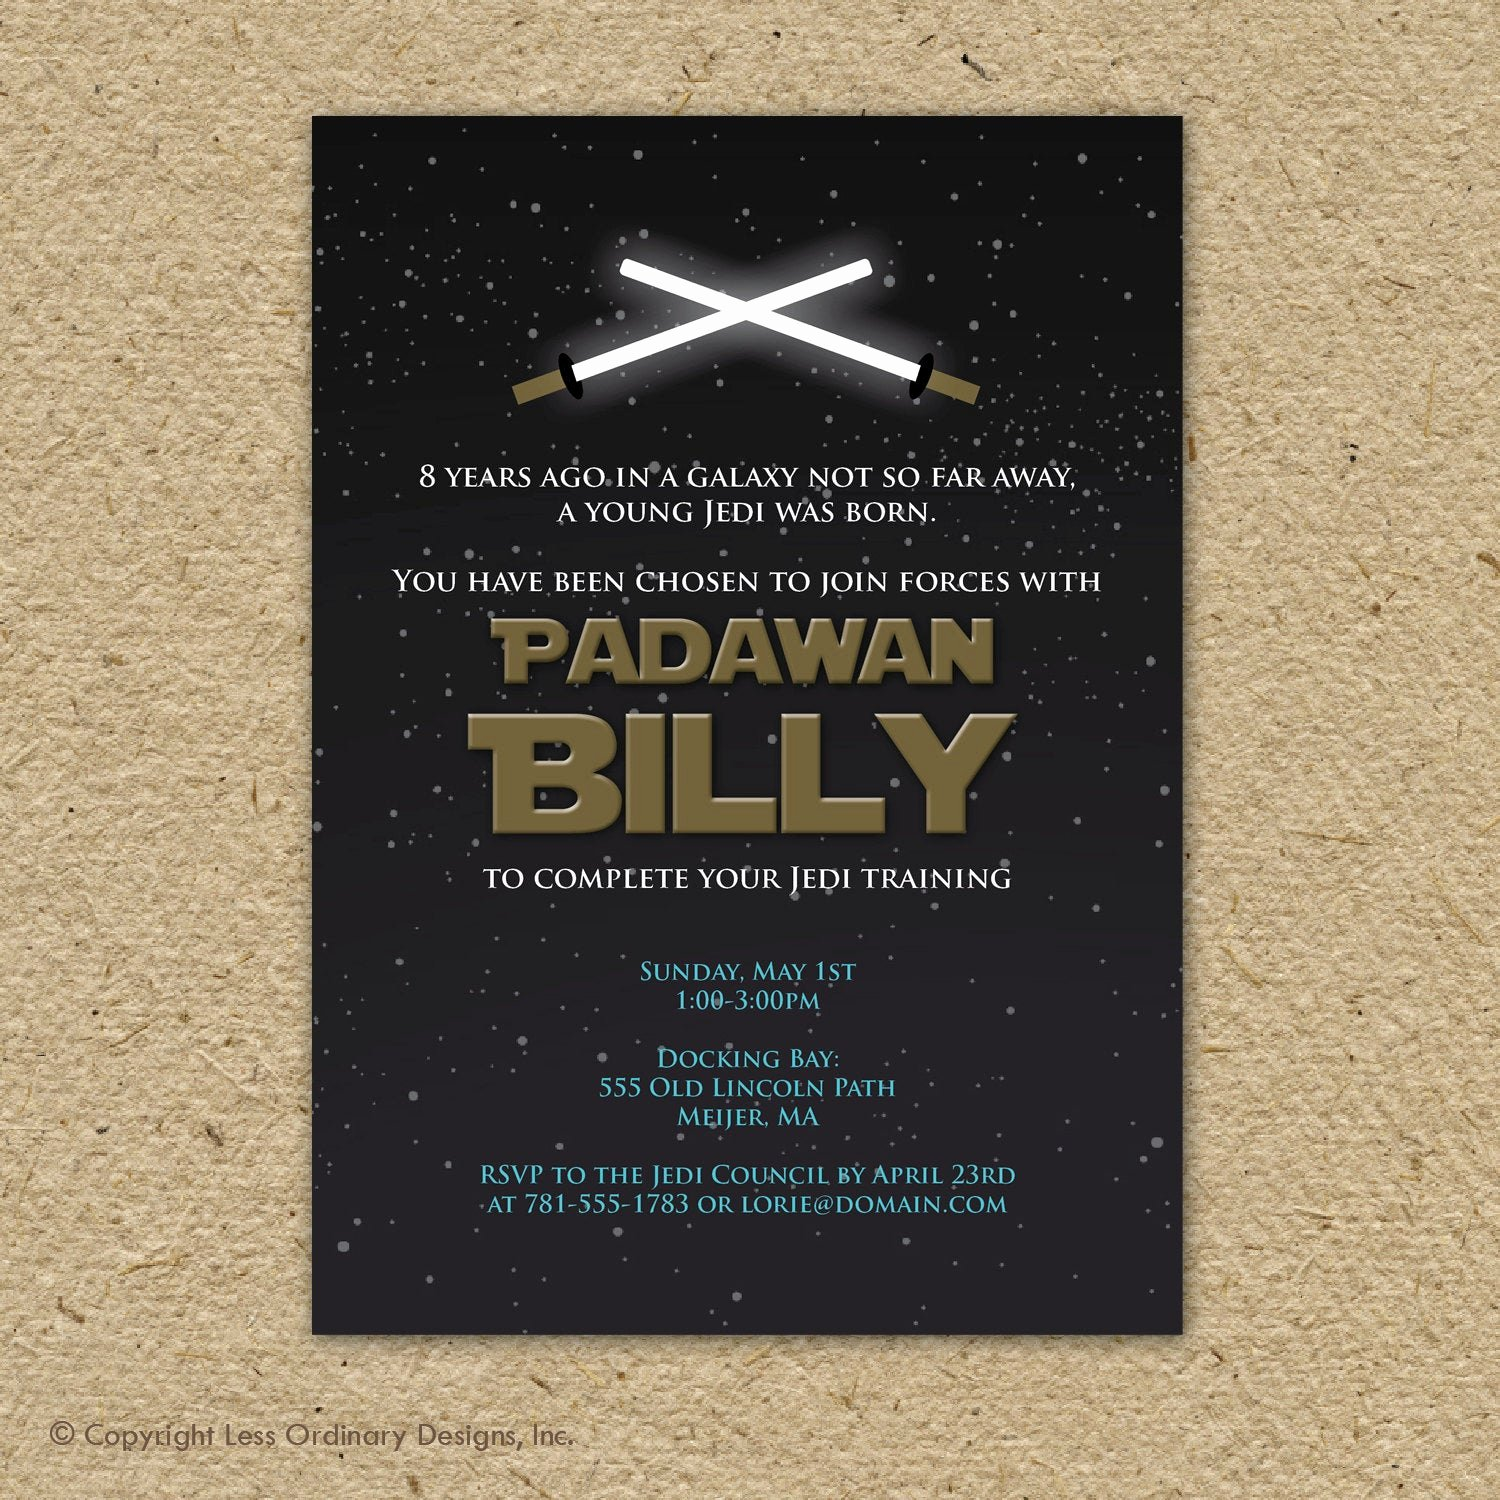 Star Wars Party Invitation Fresh Star Wars Birthday Party Invitation Printable by Saralukecreative